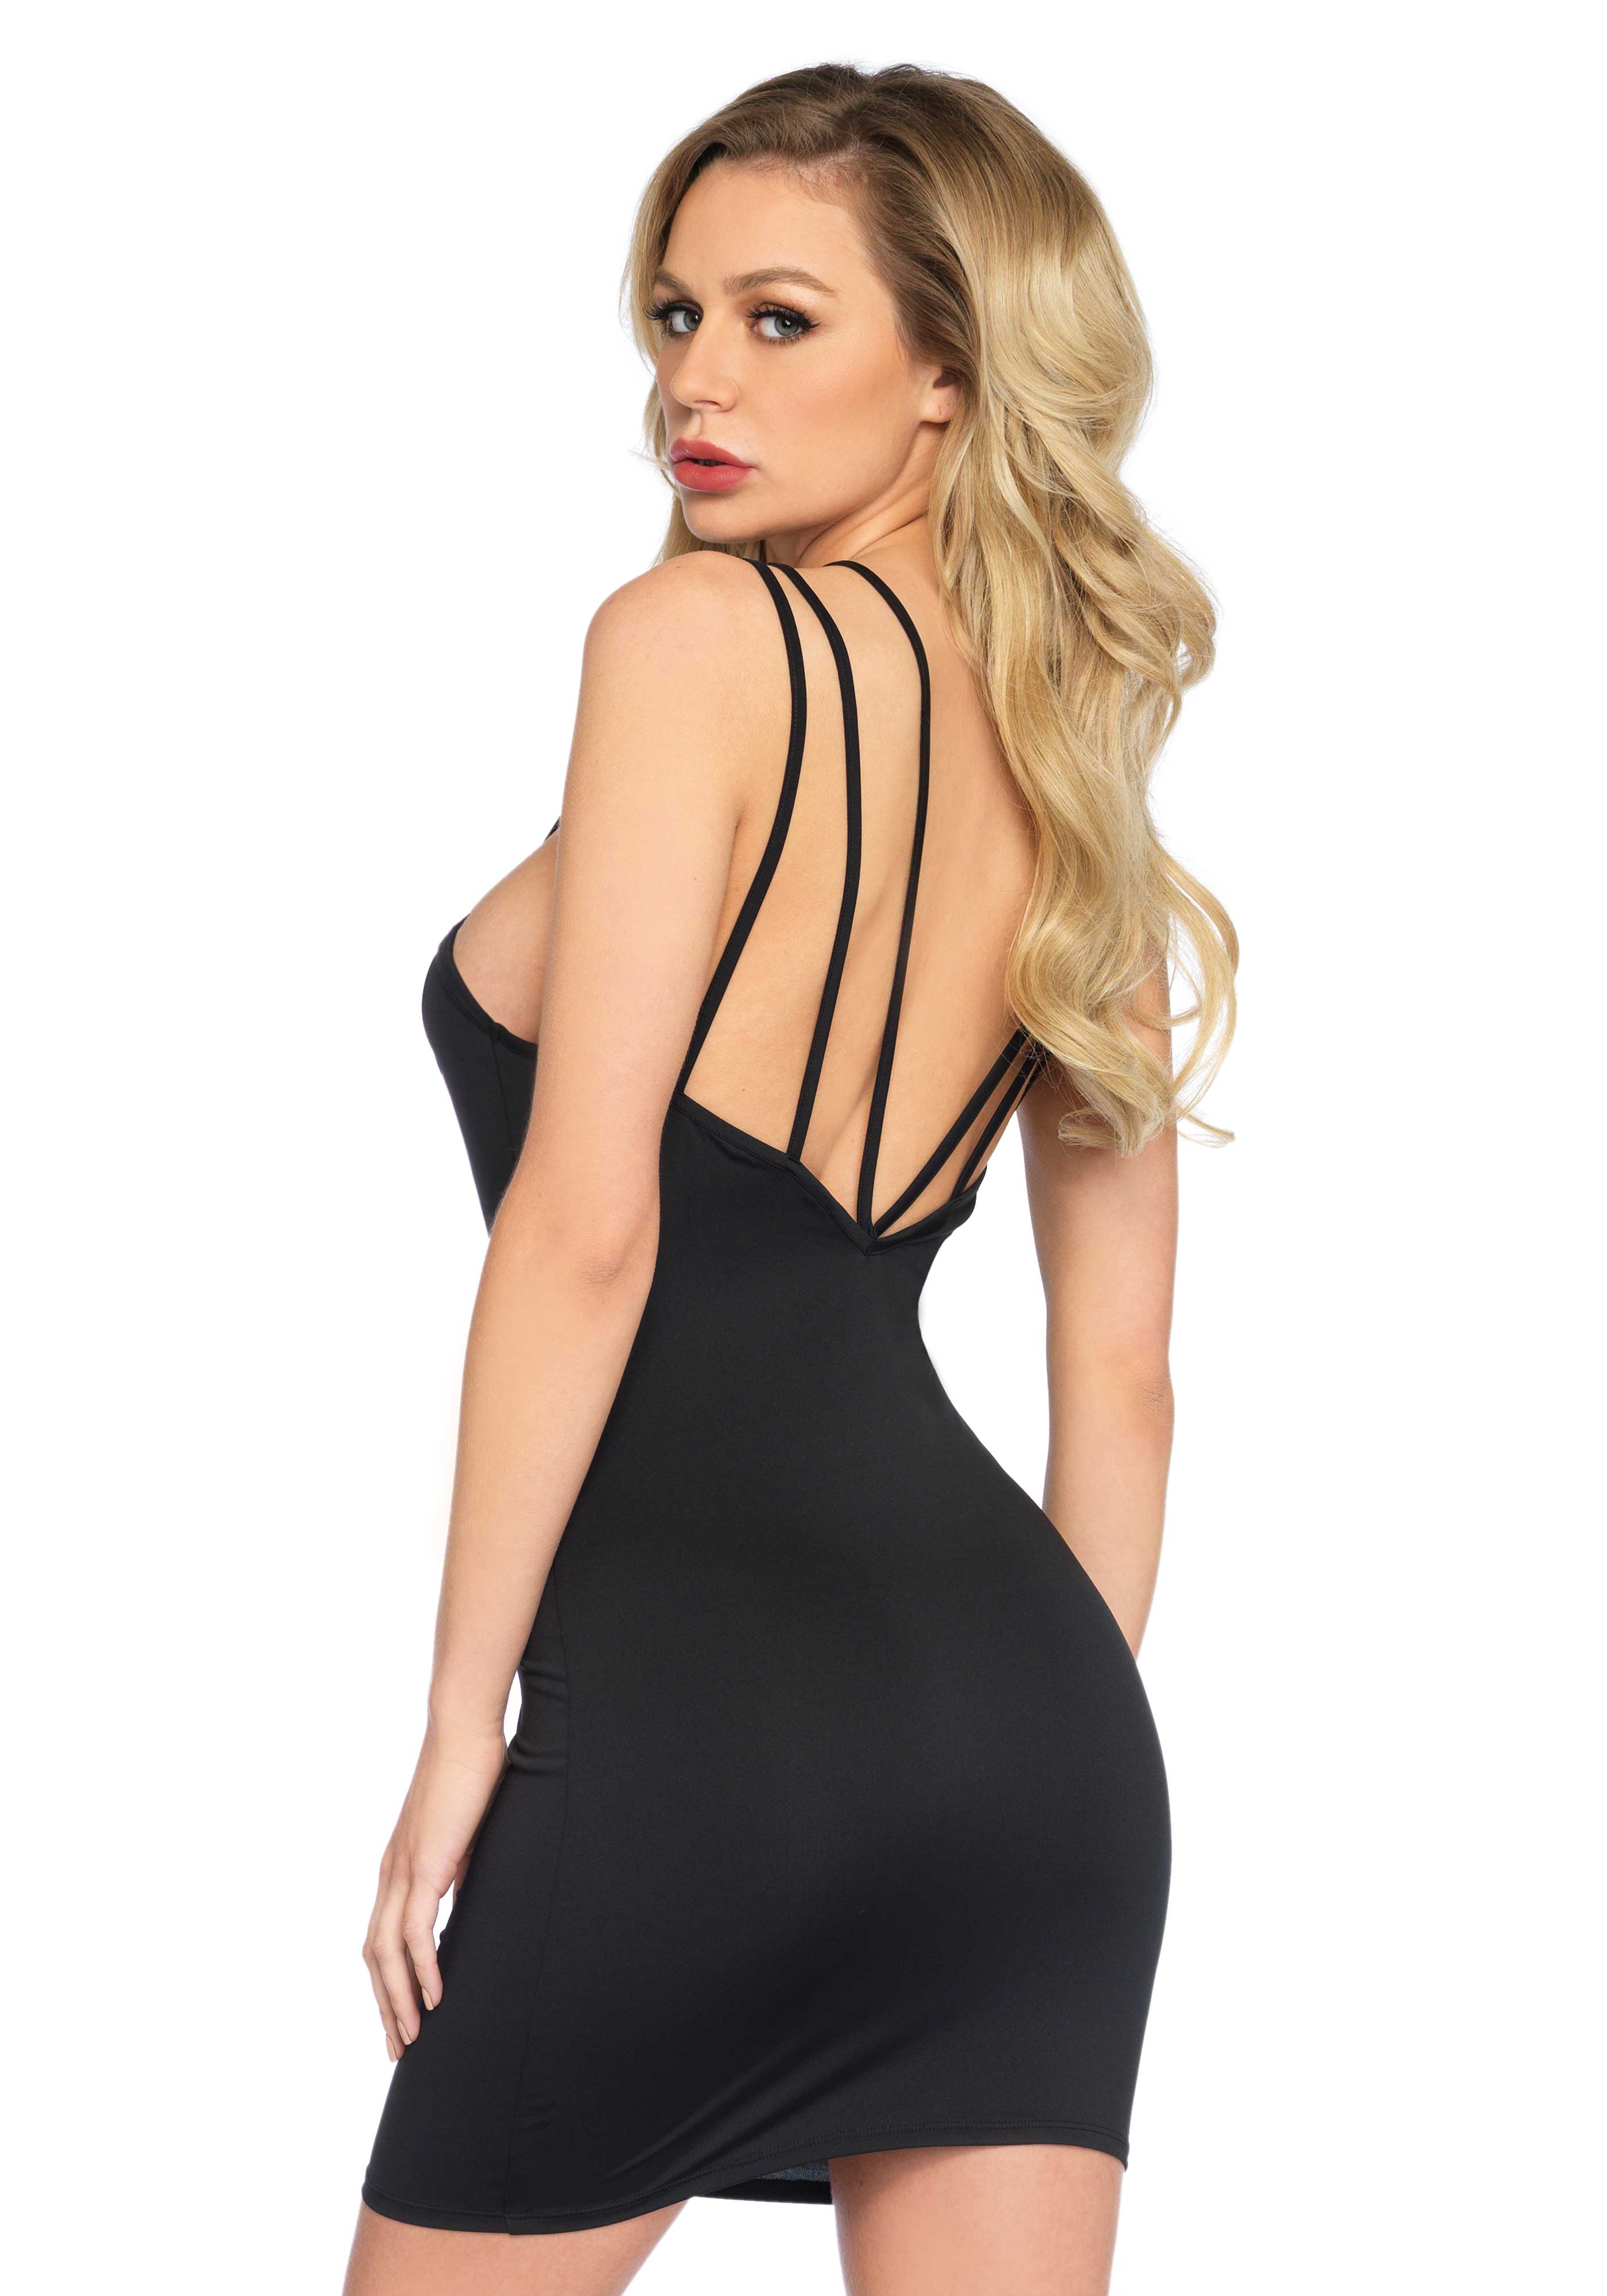 <p>Dress Felicia is spandex bodycon dress with strappy shoulder bands and embroidered lace detail at the front.</p>